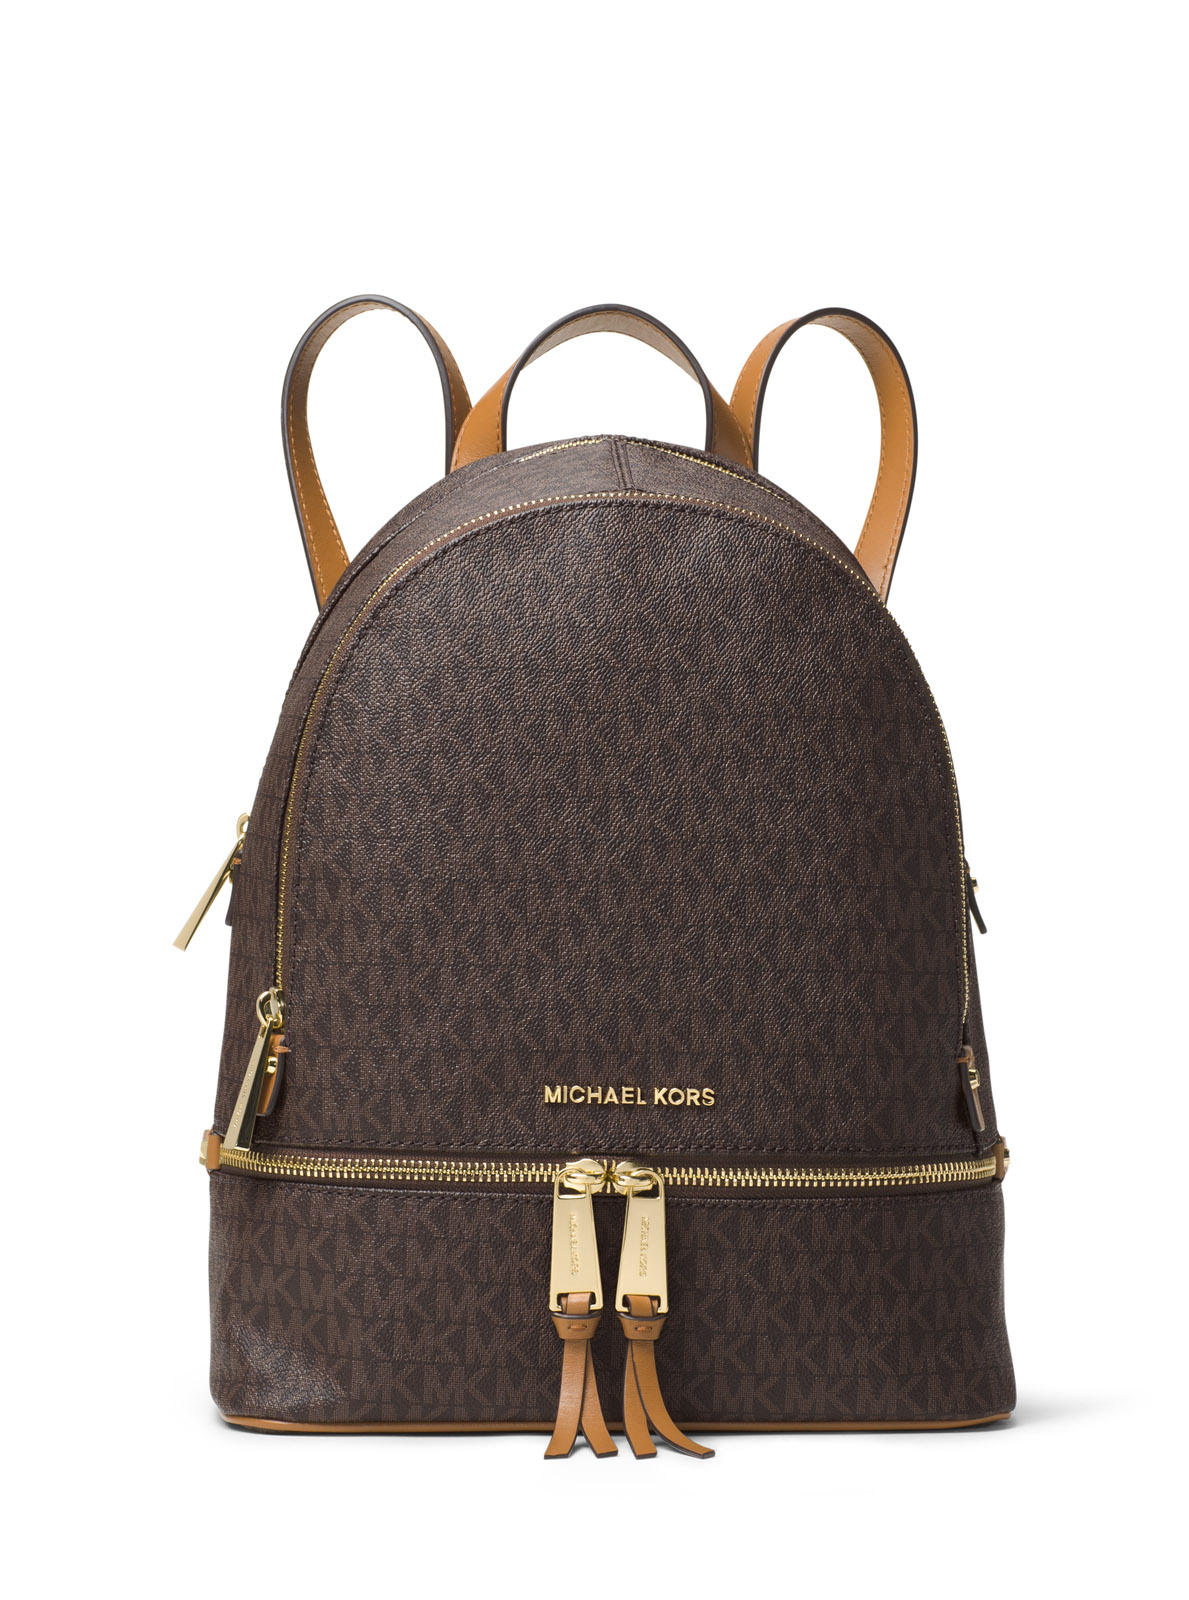 Michael Kors Σακίδιο πλάτης (Backpack) Καφέ ( Brown )  e7f15217881